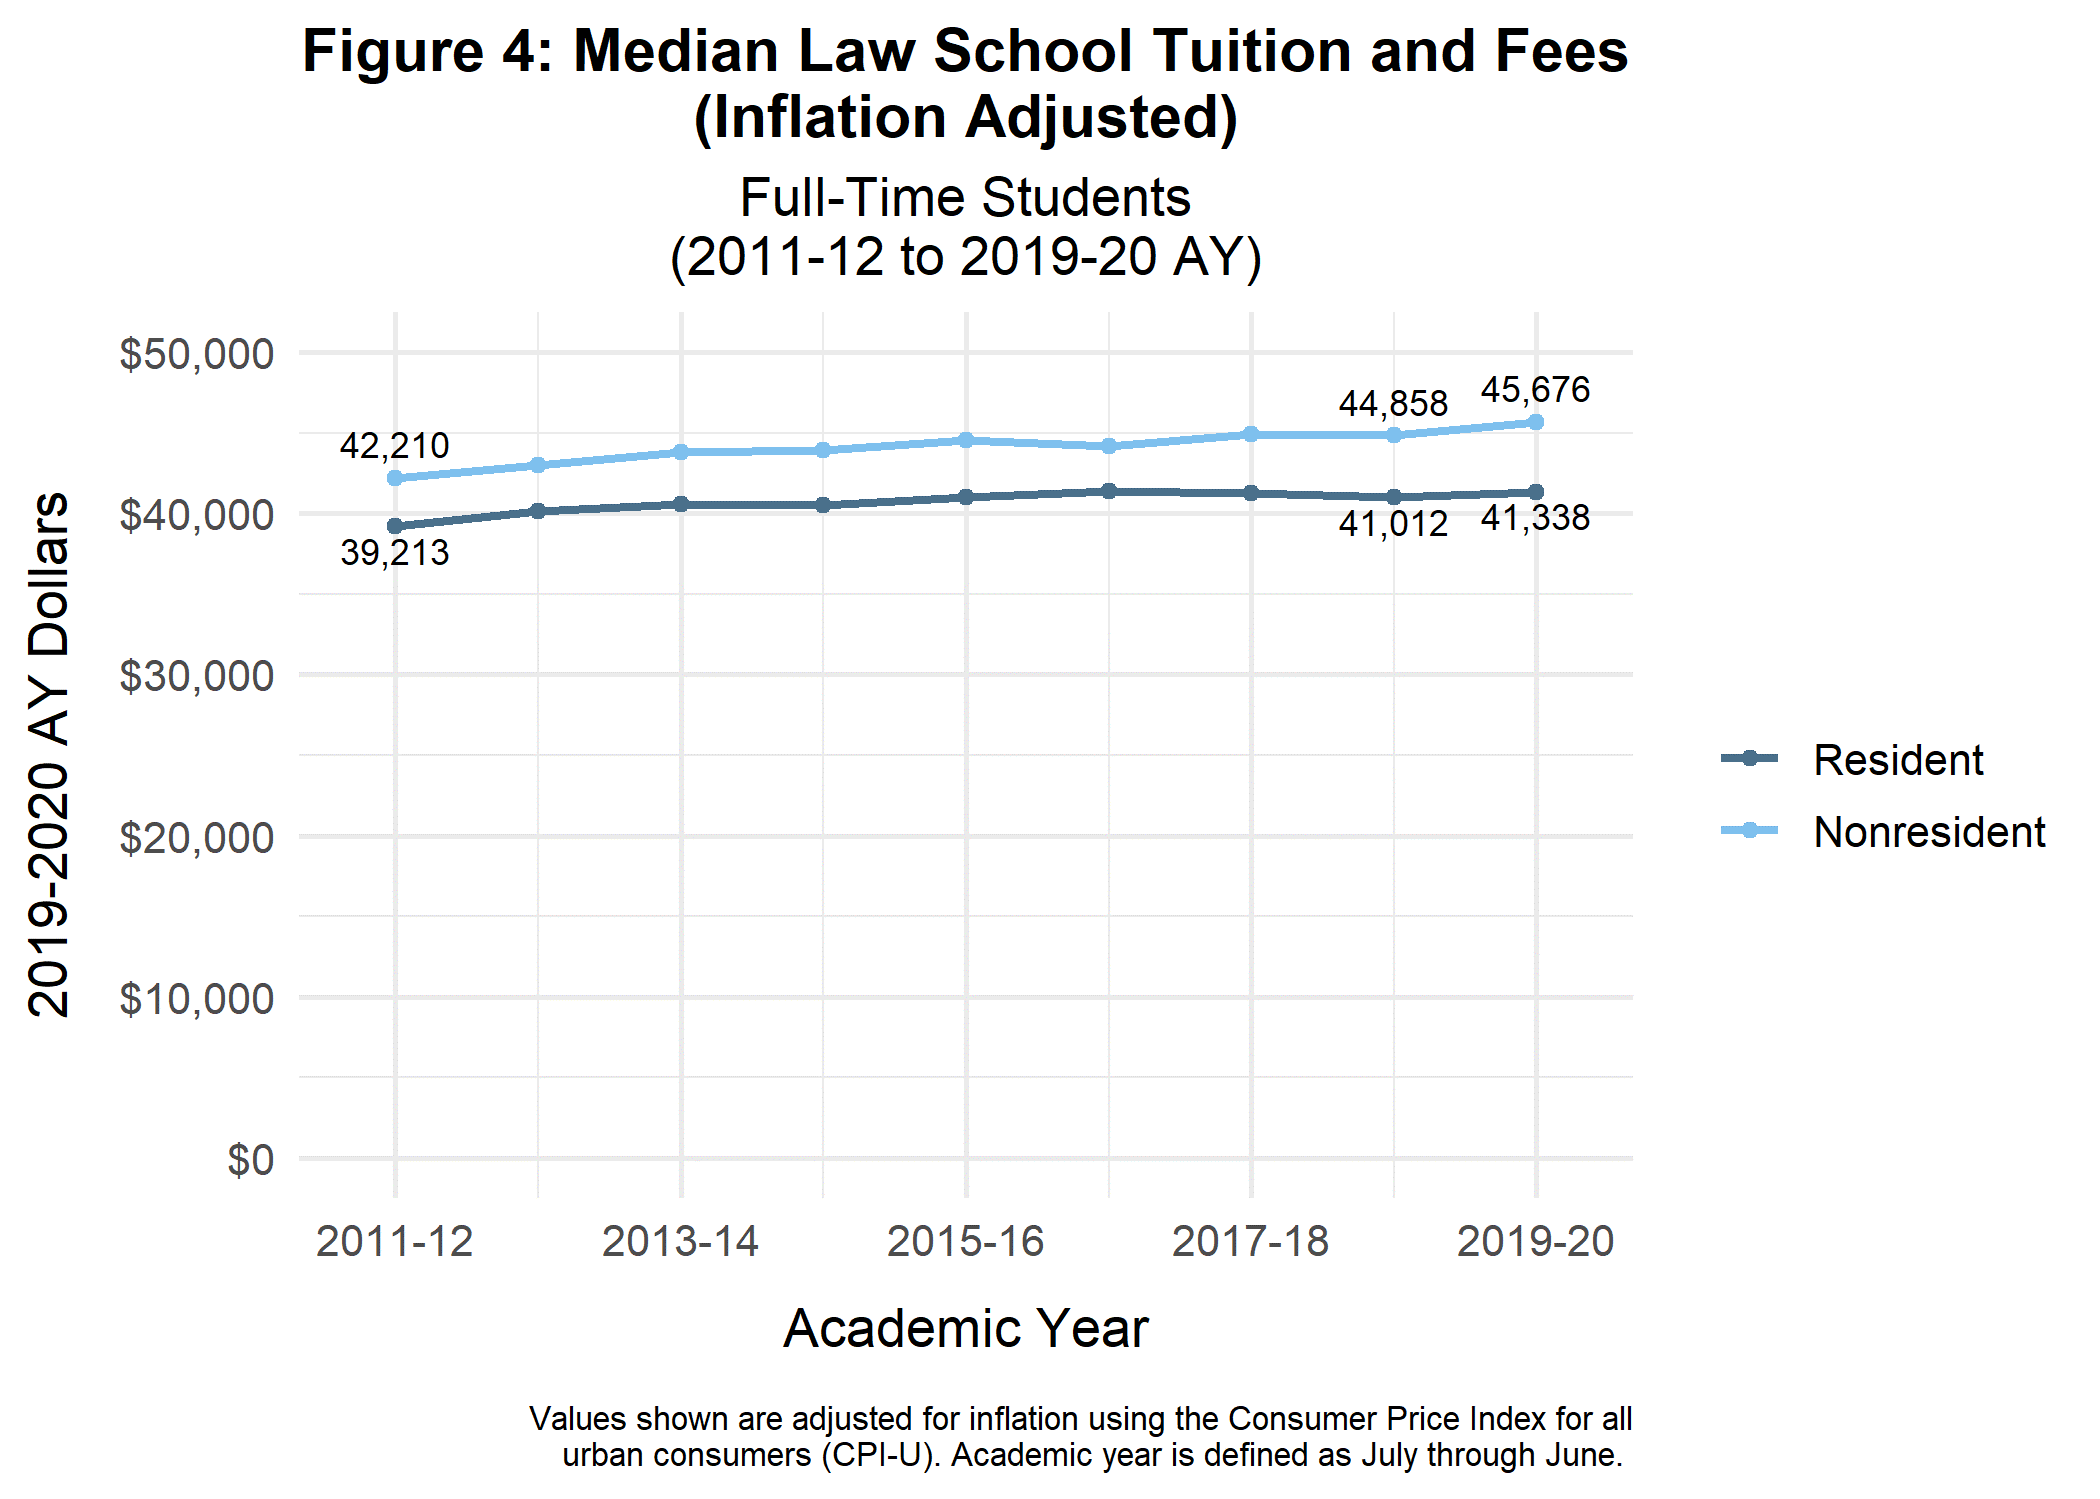 Median Law School Tuition and Fees - Adjusted